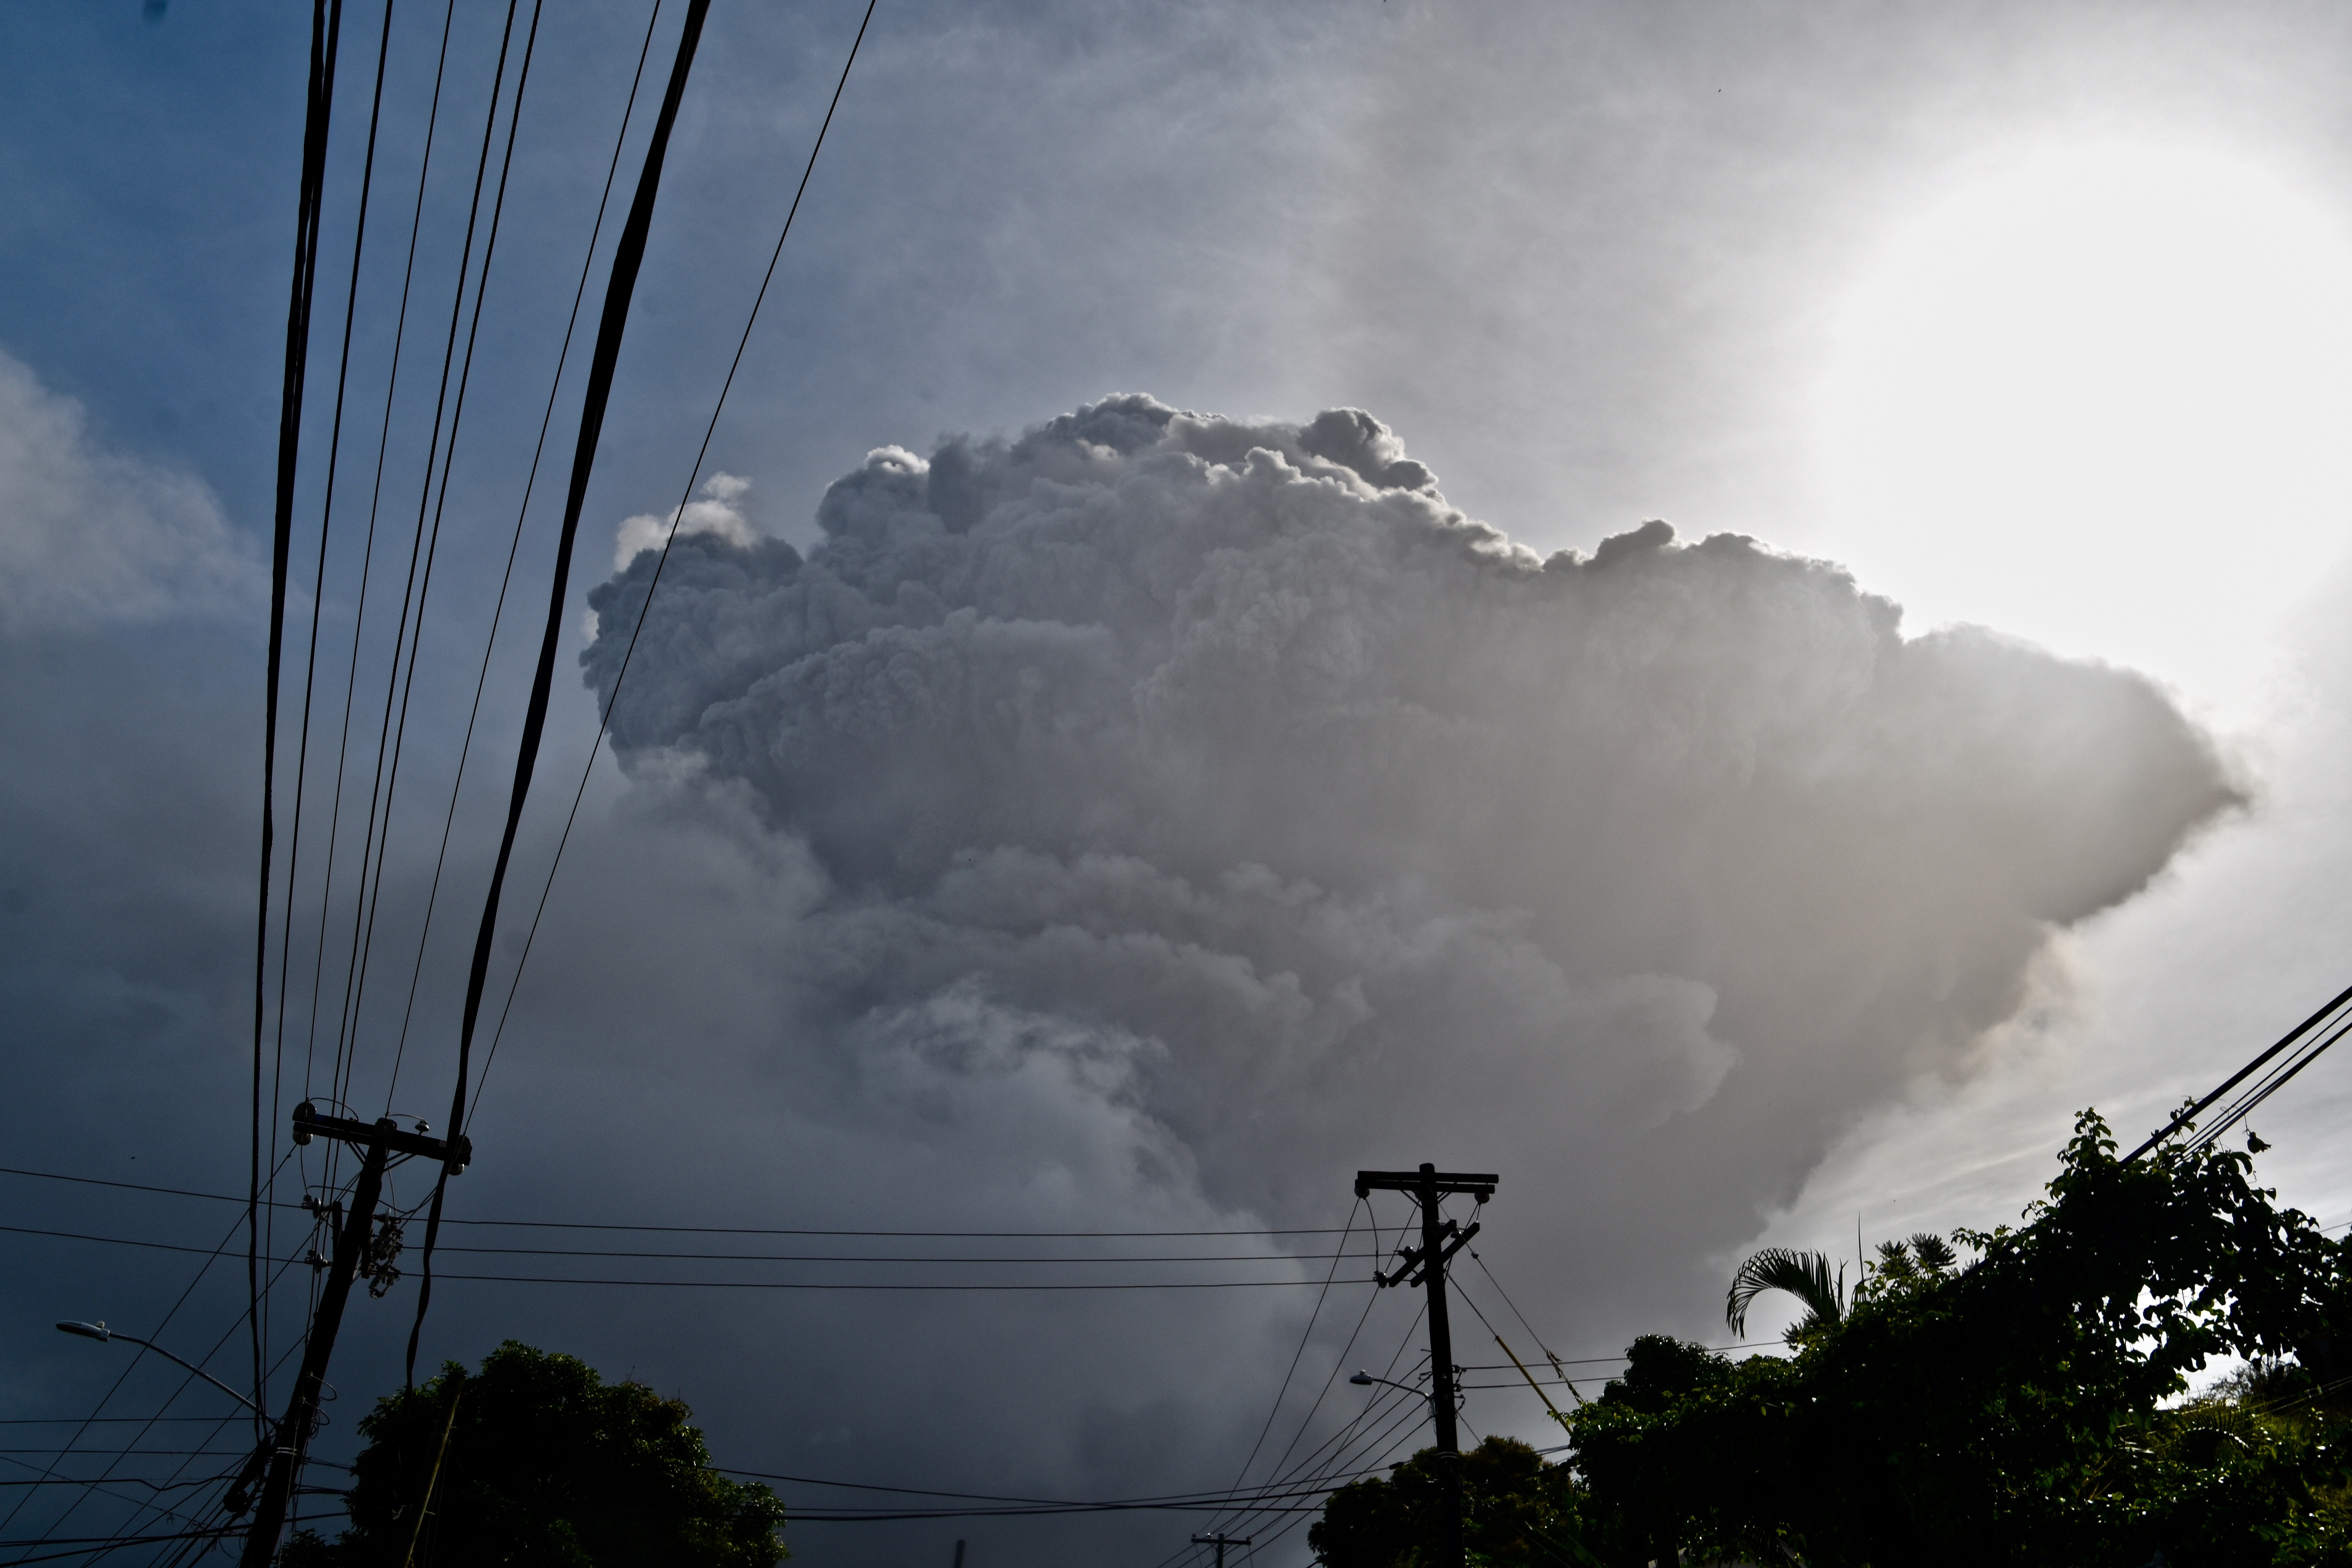 Ash rises into the air as La Soufriere volcano erupts on the eastern Caribbean island of St. Vincent, on April 9, 2021.